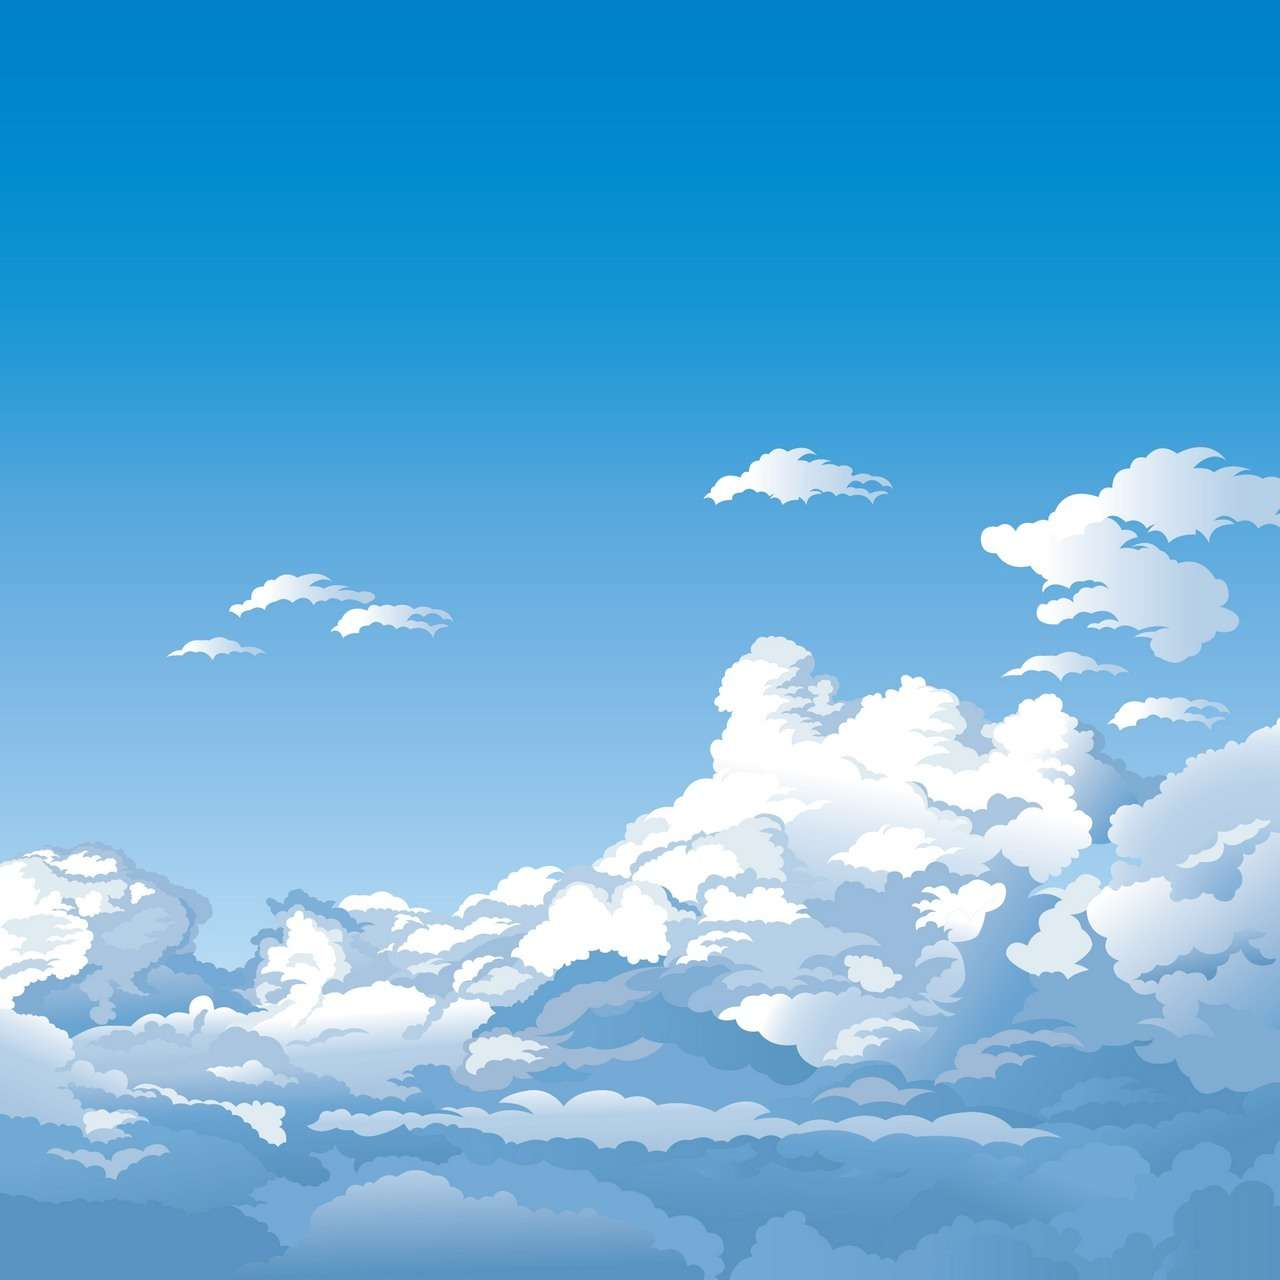 Cloud Background 02 png